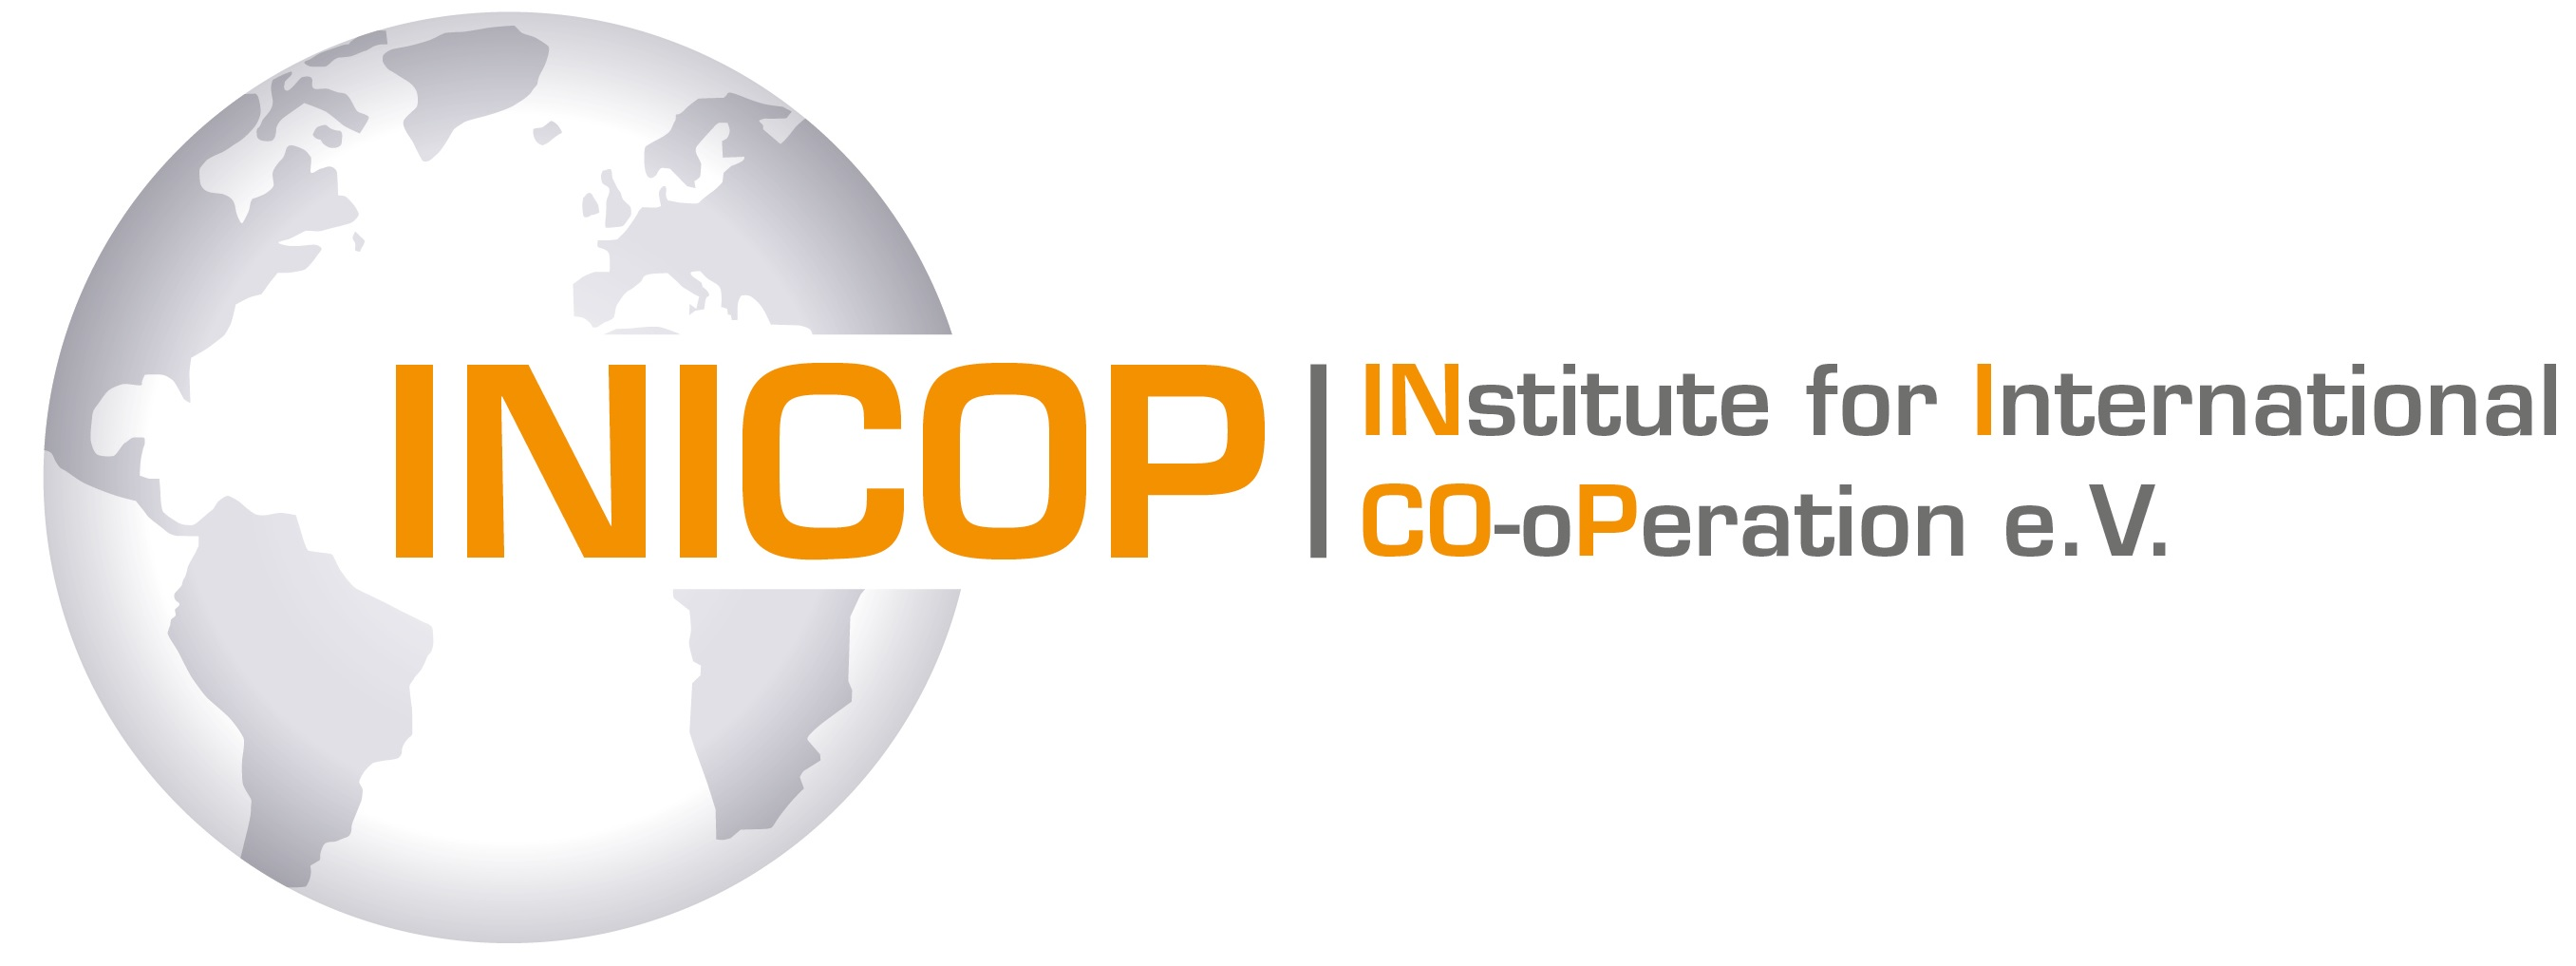 INICOP: INstitute for Intgernational CO-oPeration e. V.